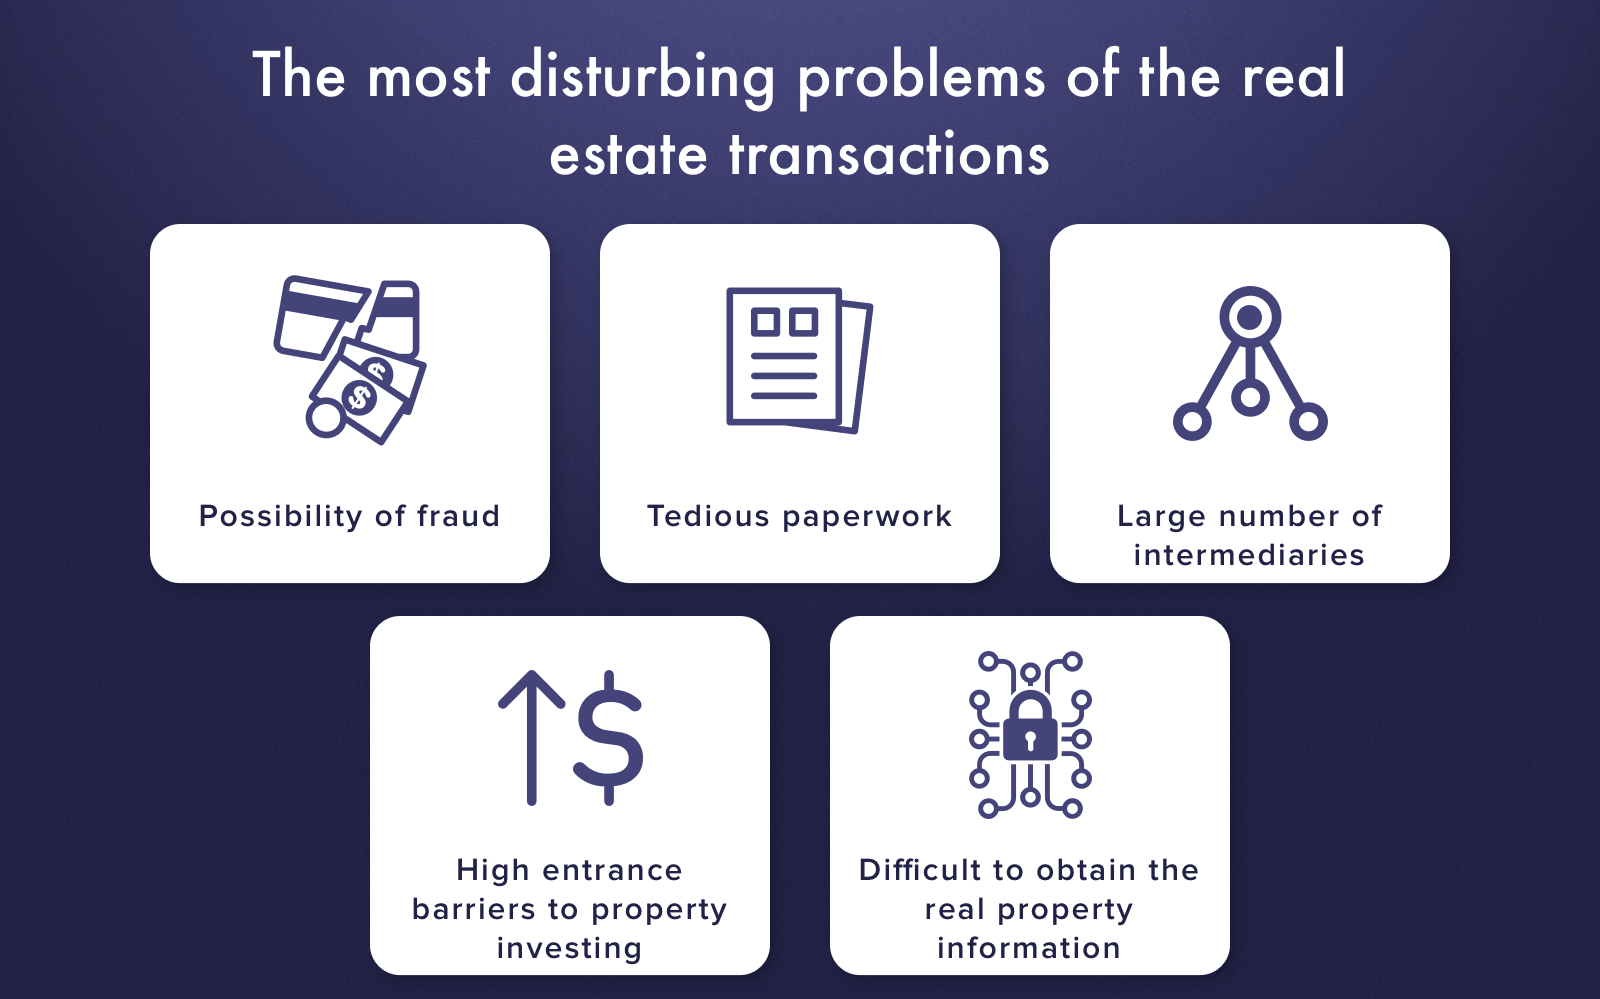 The most disturbing problems of the real estate transactions